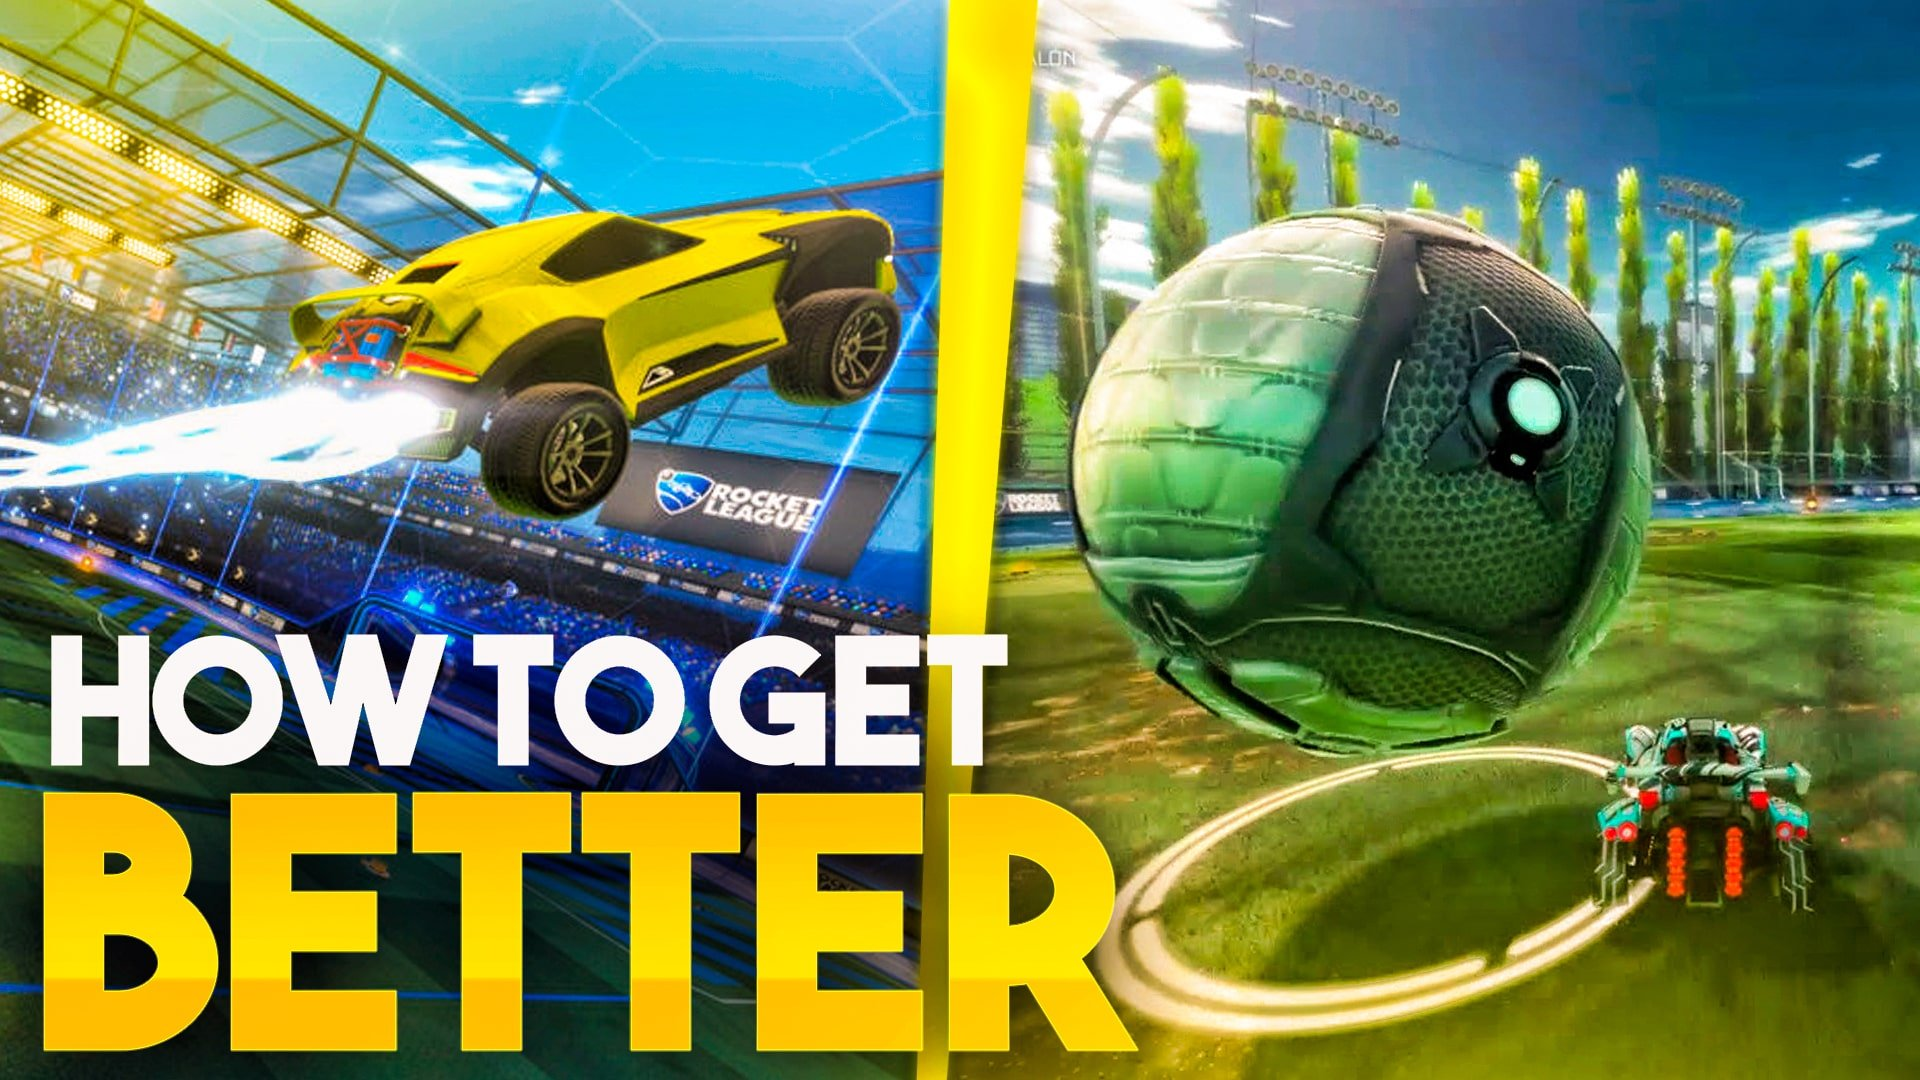 How to get Better at Rocket League?